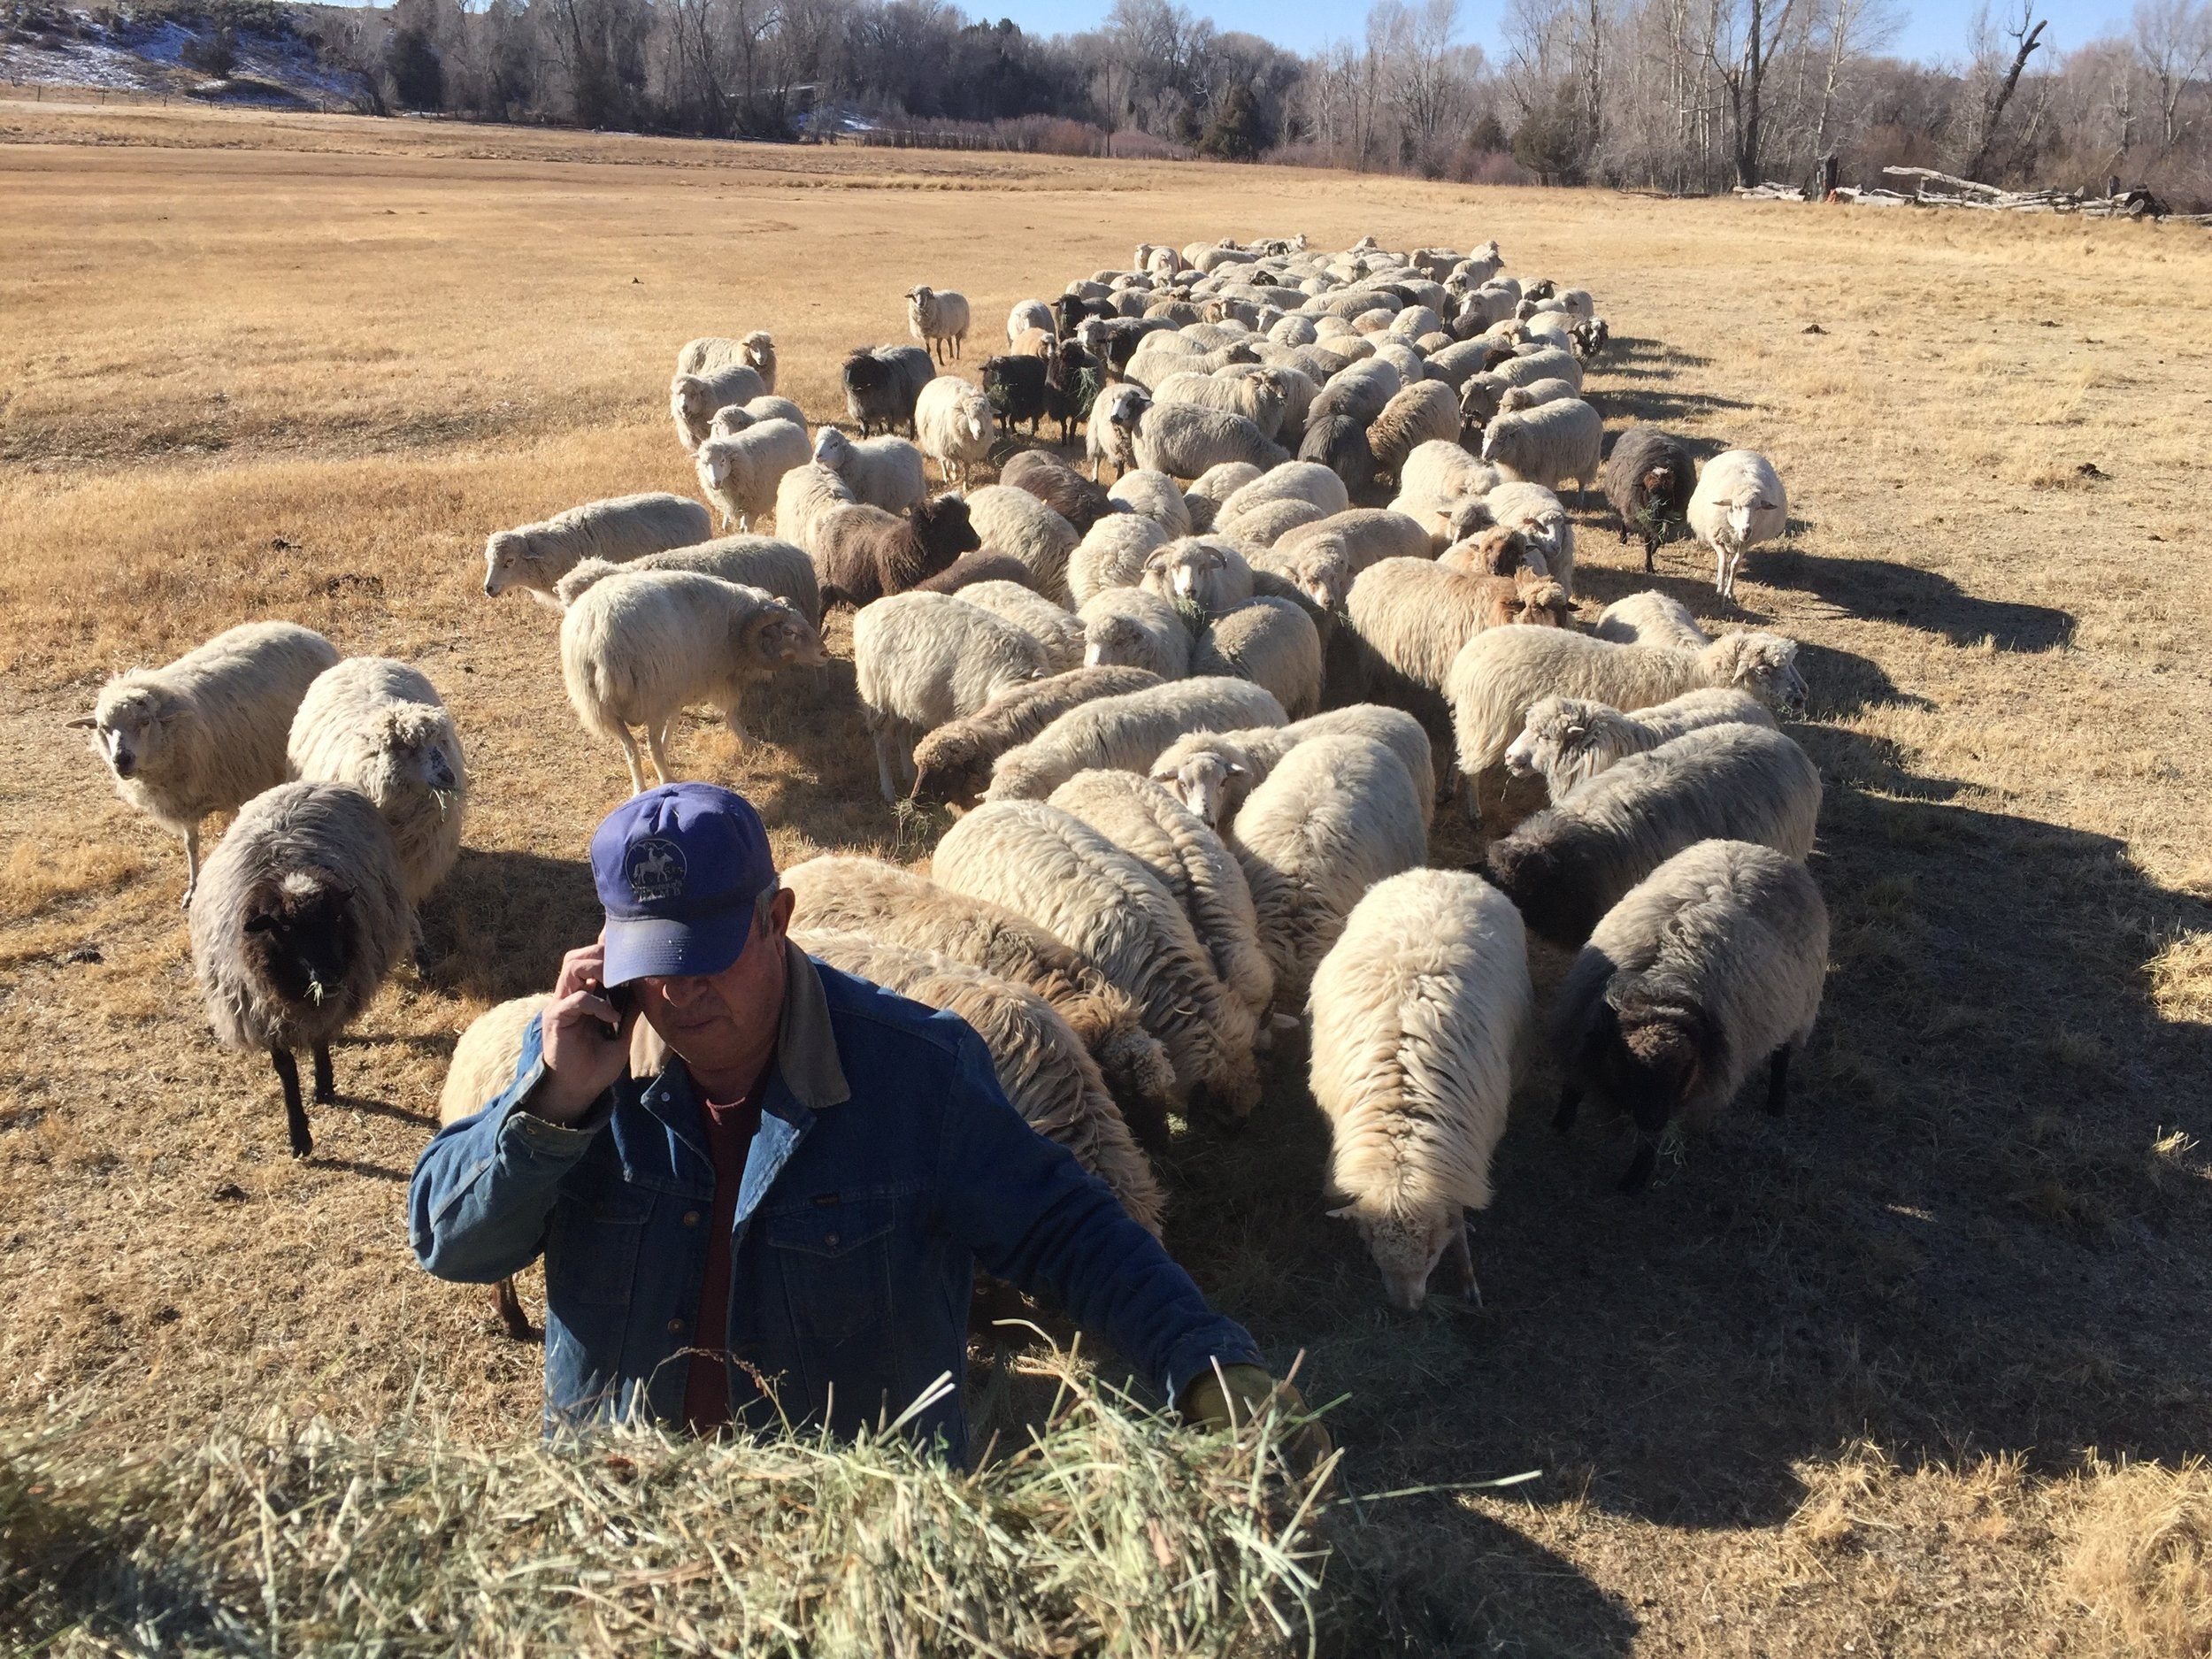 Antonio, multitasking! Phone calls come even while feeding the Churro ewes....